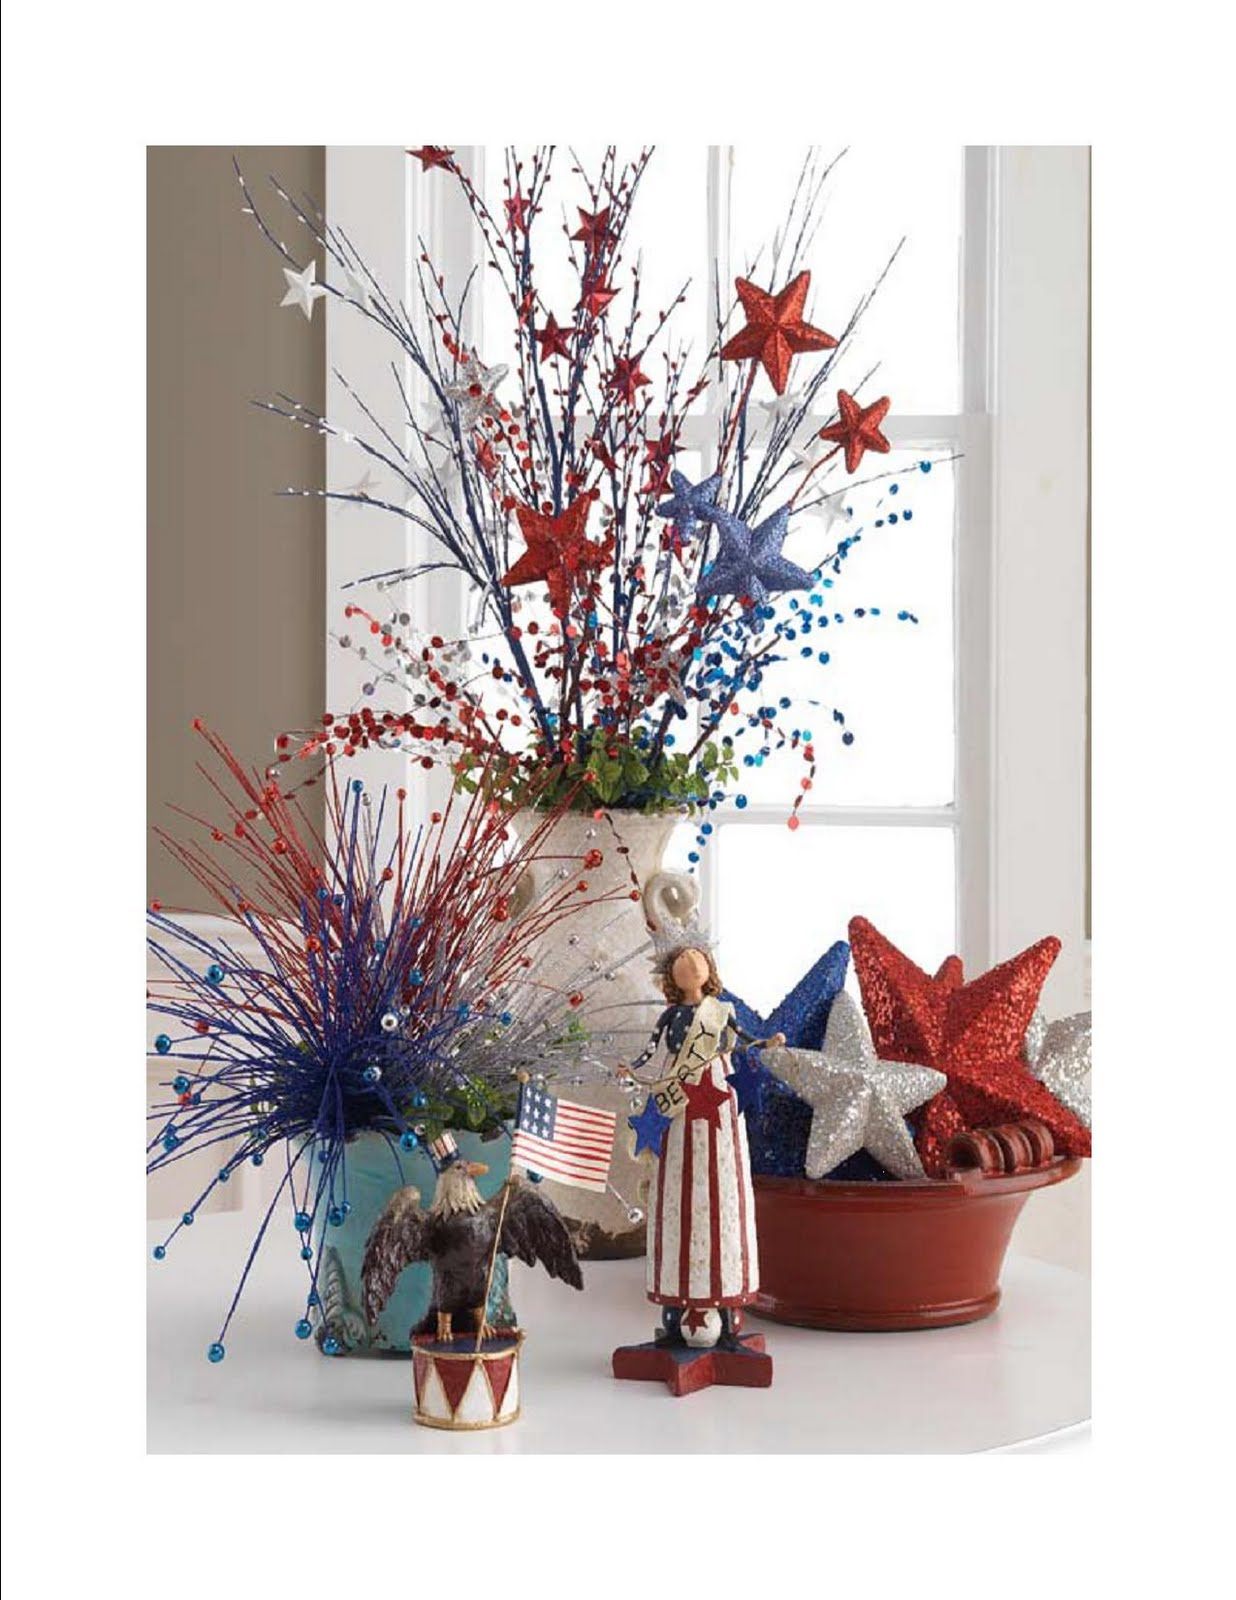 Shelley b decor and more july 4th decorations Shelley b home decor